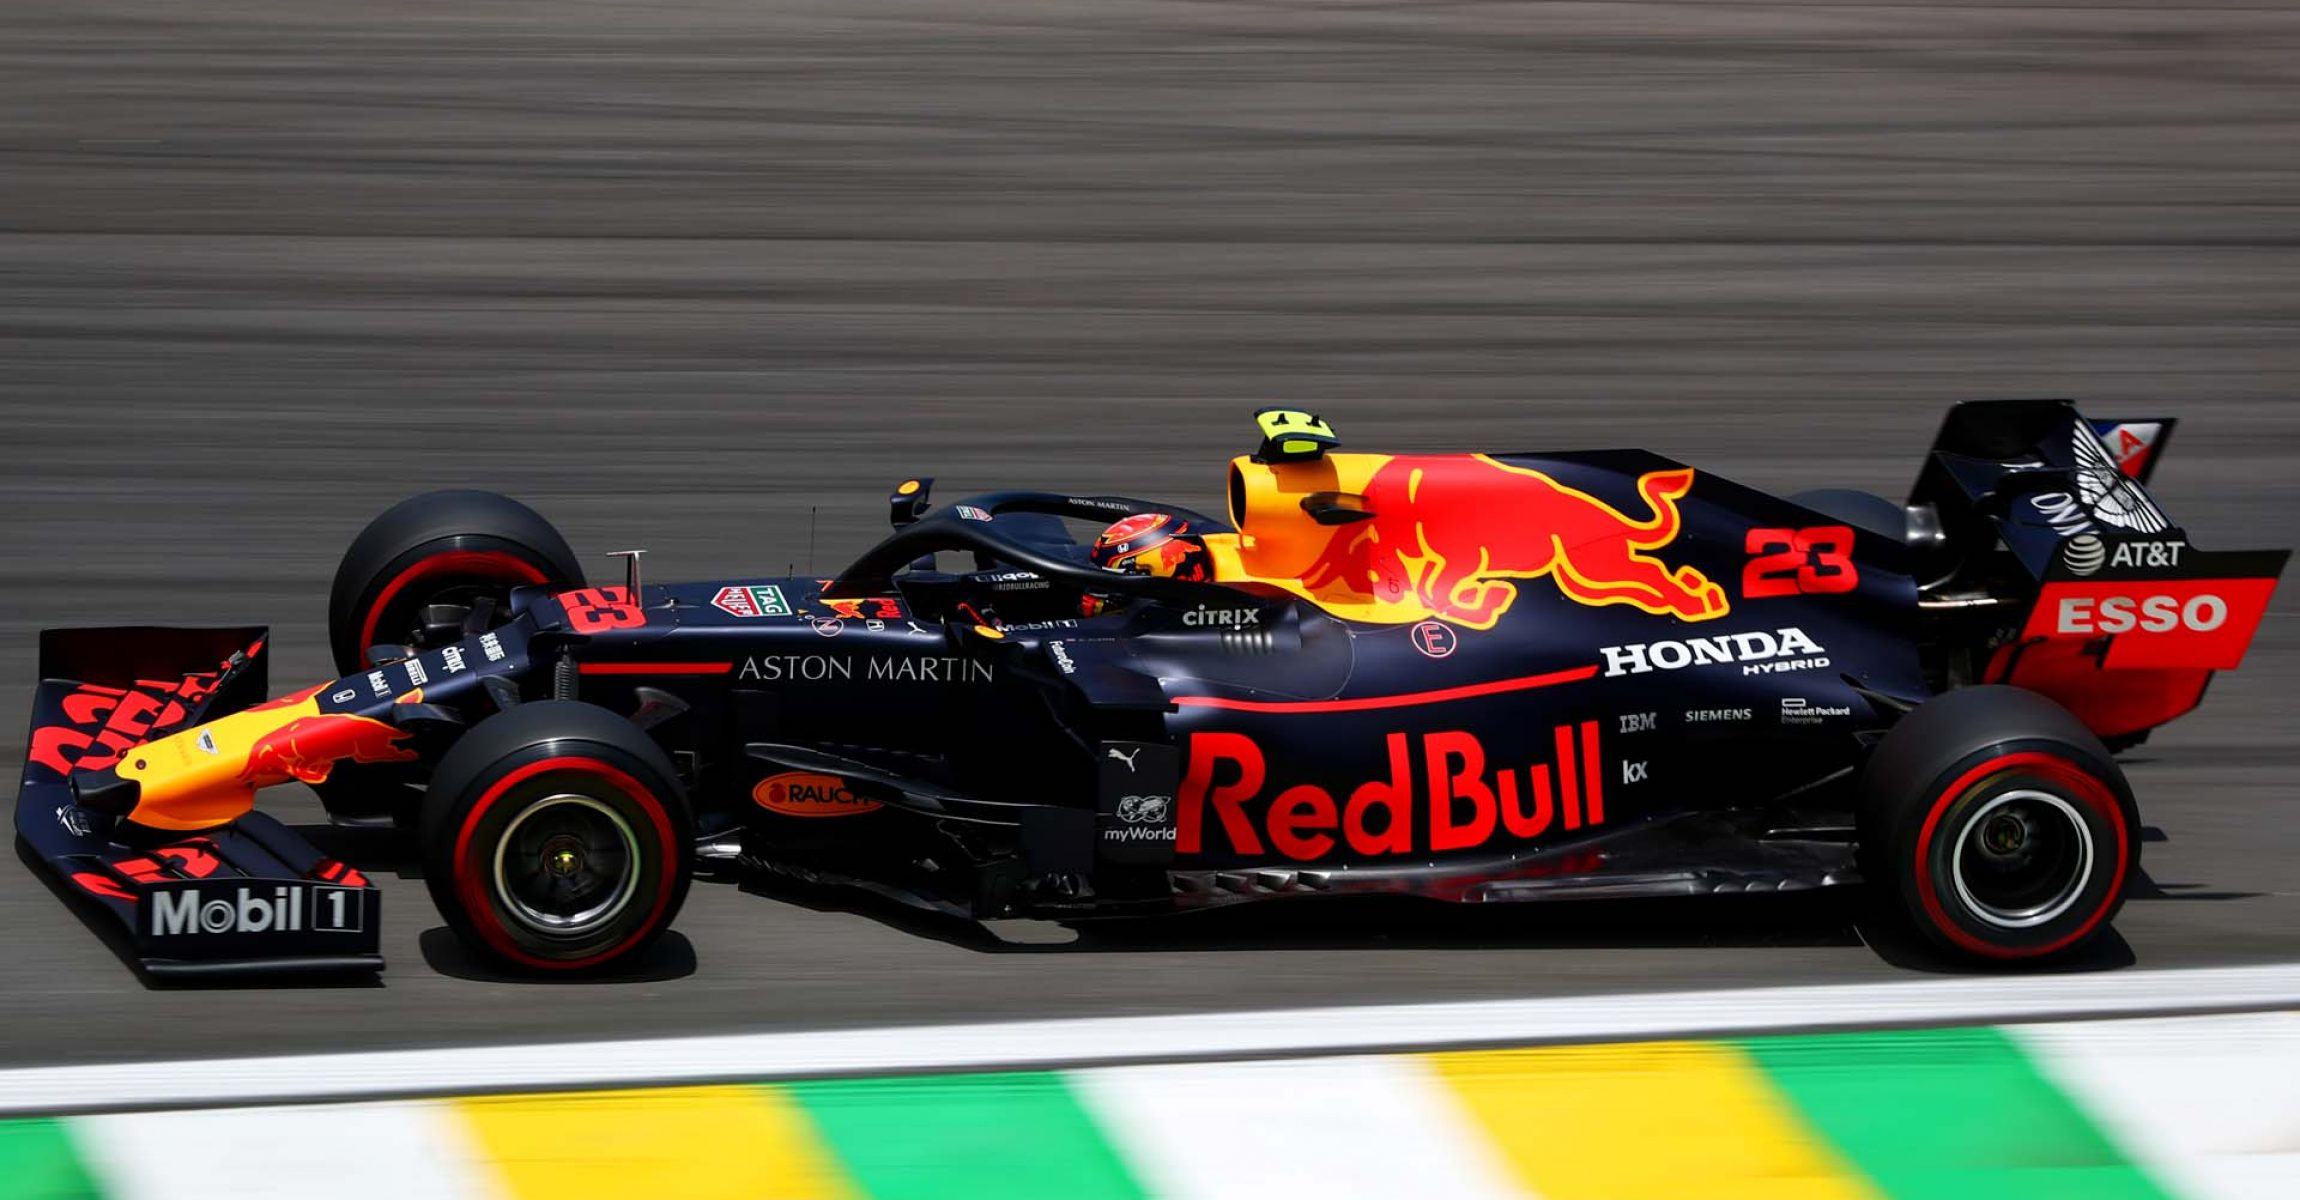 SAO PAULO, BRAZIL - NOVEMBER 16: Alexander Albon of Thailand driving the (23) Aston Martin Red Bull Racing RB15 on track during final practice for the F1 Grand Prix of Brazil at Autodromo Jose Carlos Pace on November 16, 2019 in Sao Paulo, Brazil. (Photo by Dan Istitene/Getty Images) // Getty Images / Red Bull Content Pool // AP-22725ZCD12111 // Usage for editorial use only //